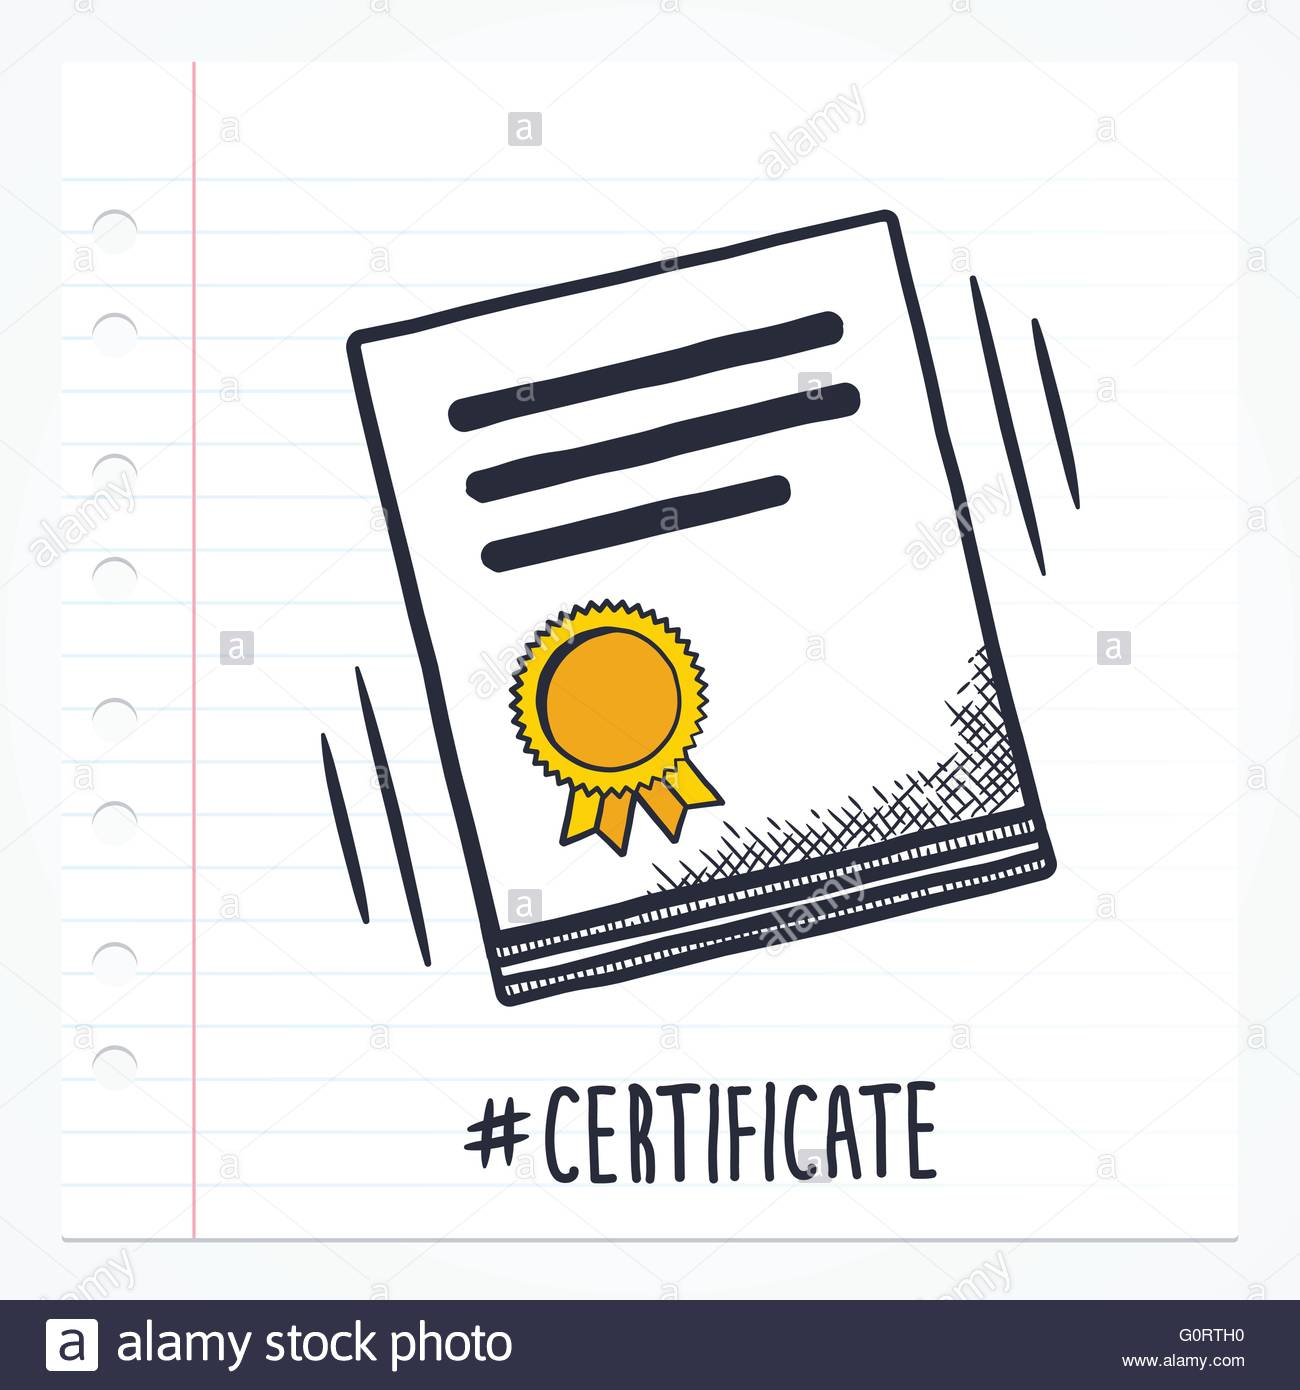 Vector Doodle Certificate Icon Illustration With Color Drawn On